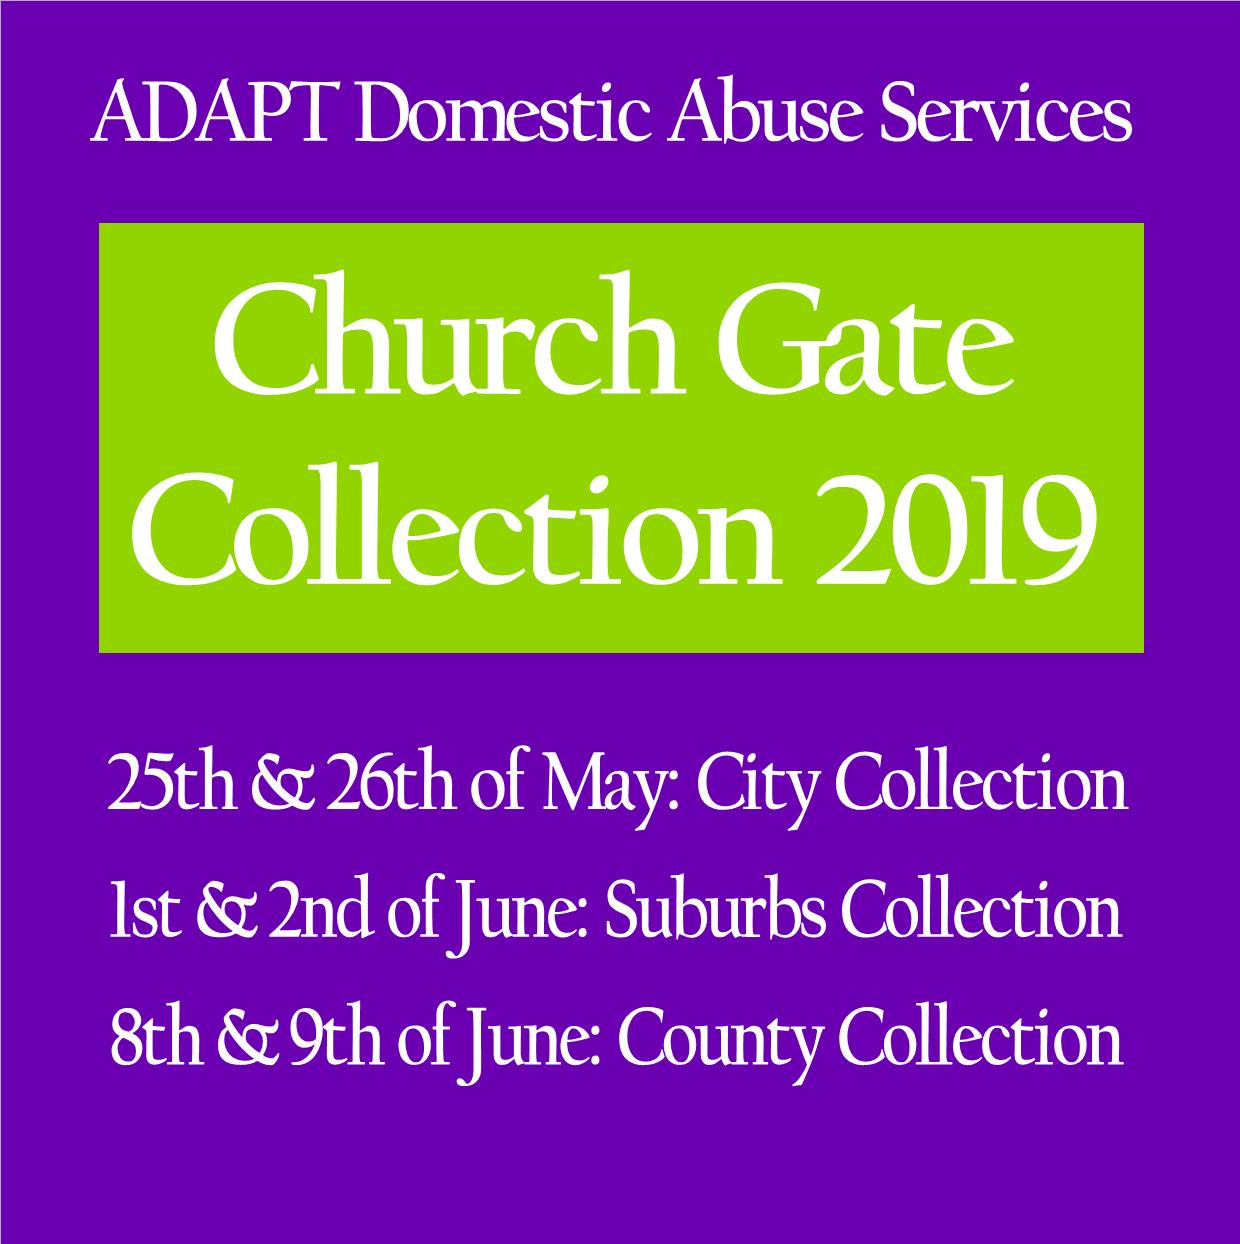 ADAPT Church Gate Collection 2019 Schedule